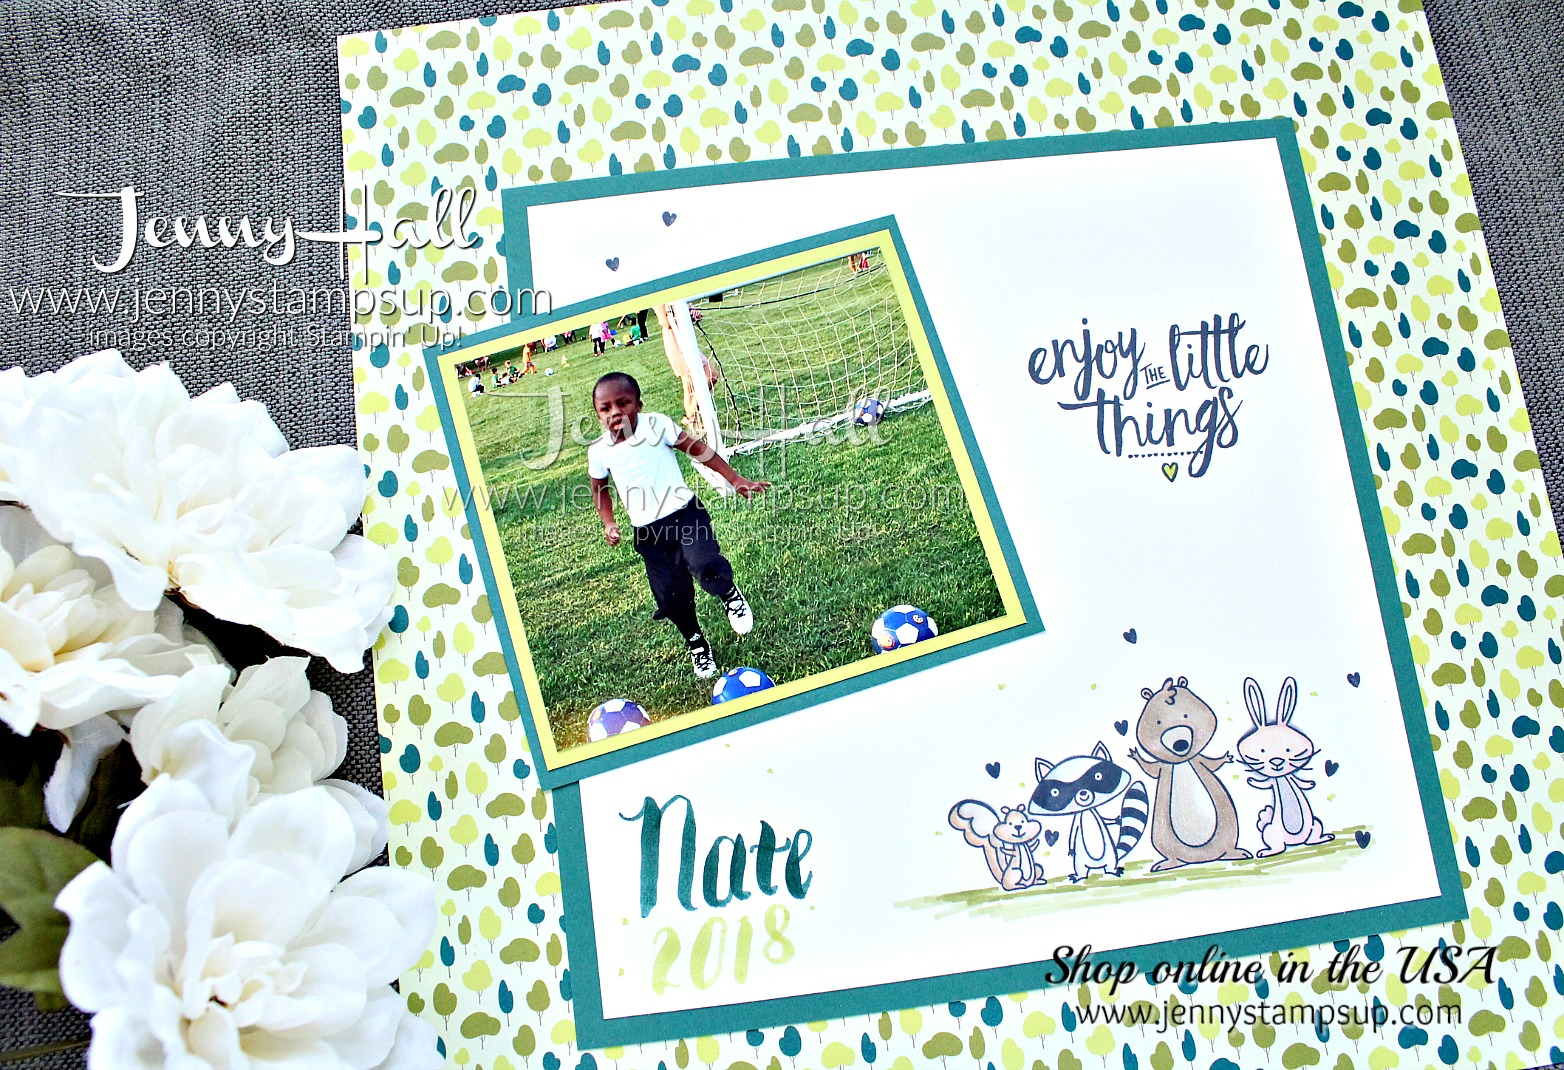 The Cheering Section layout created by Jenny Hall at www.jennyhalldesign.com #scrapbooking #cardmaking #stamping #stampinup #tranquiltide #myths&magic #wemustcelebrate #stampinblends #soccertheme #jennyhall #jennyhalldesign #jennystampsup #crafts #papercrafting #lifestyle #youtuber #craftyyoutube #processvideo #videotutorial